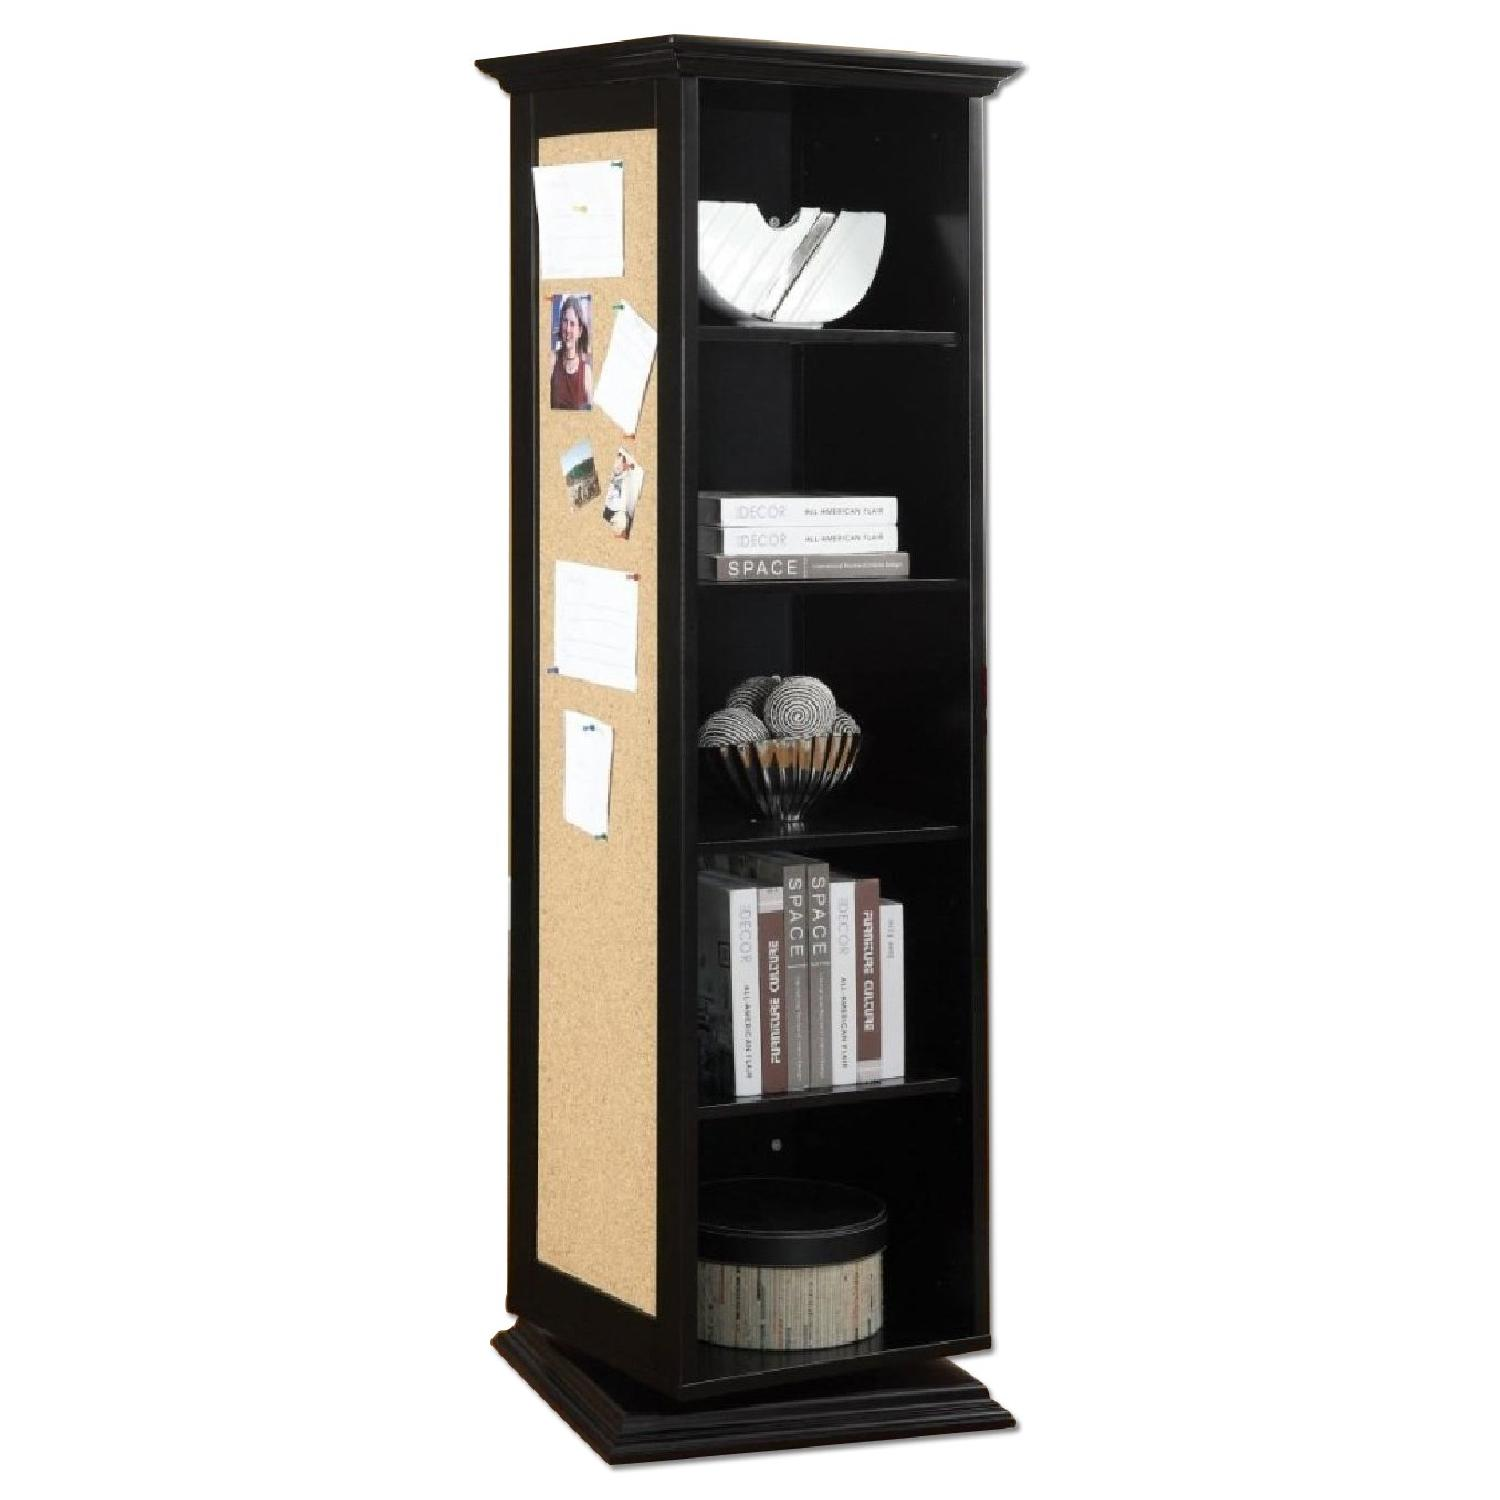 Swivel Cabinet w/ Mirror & Nailboard in Black Finish - image-0